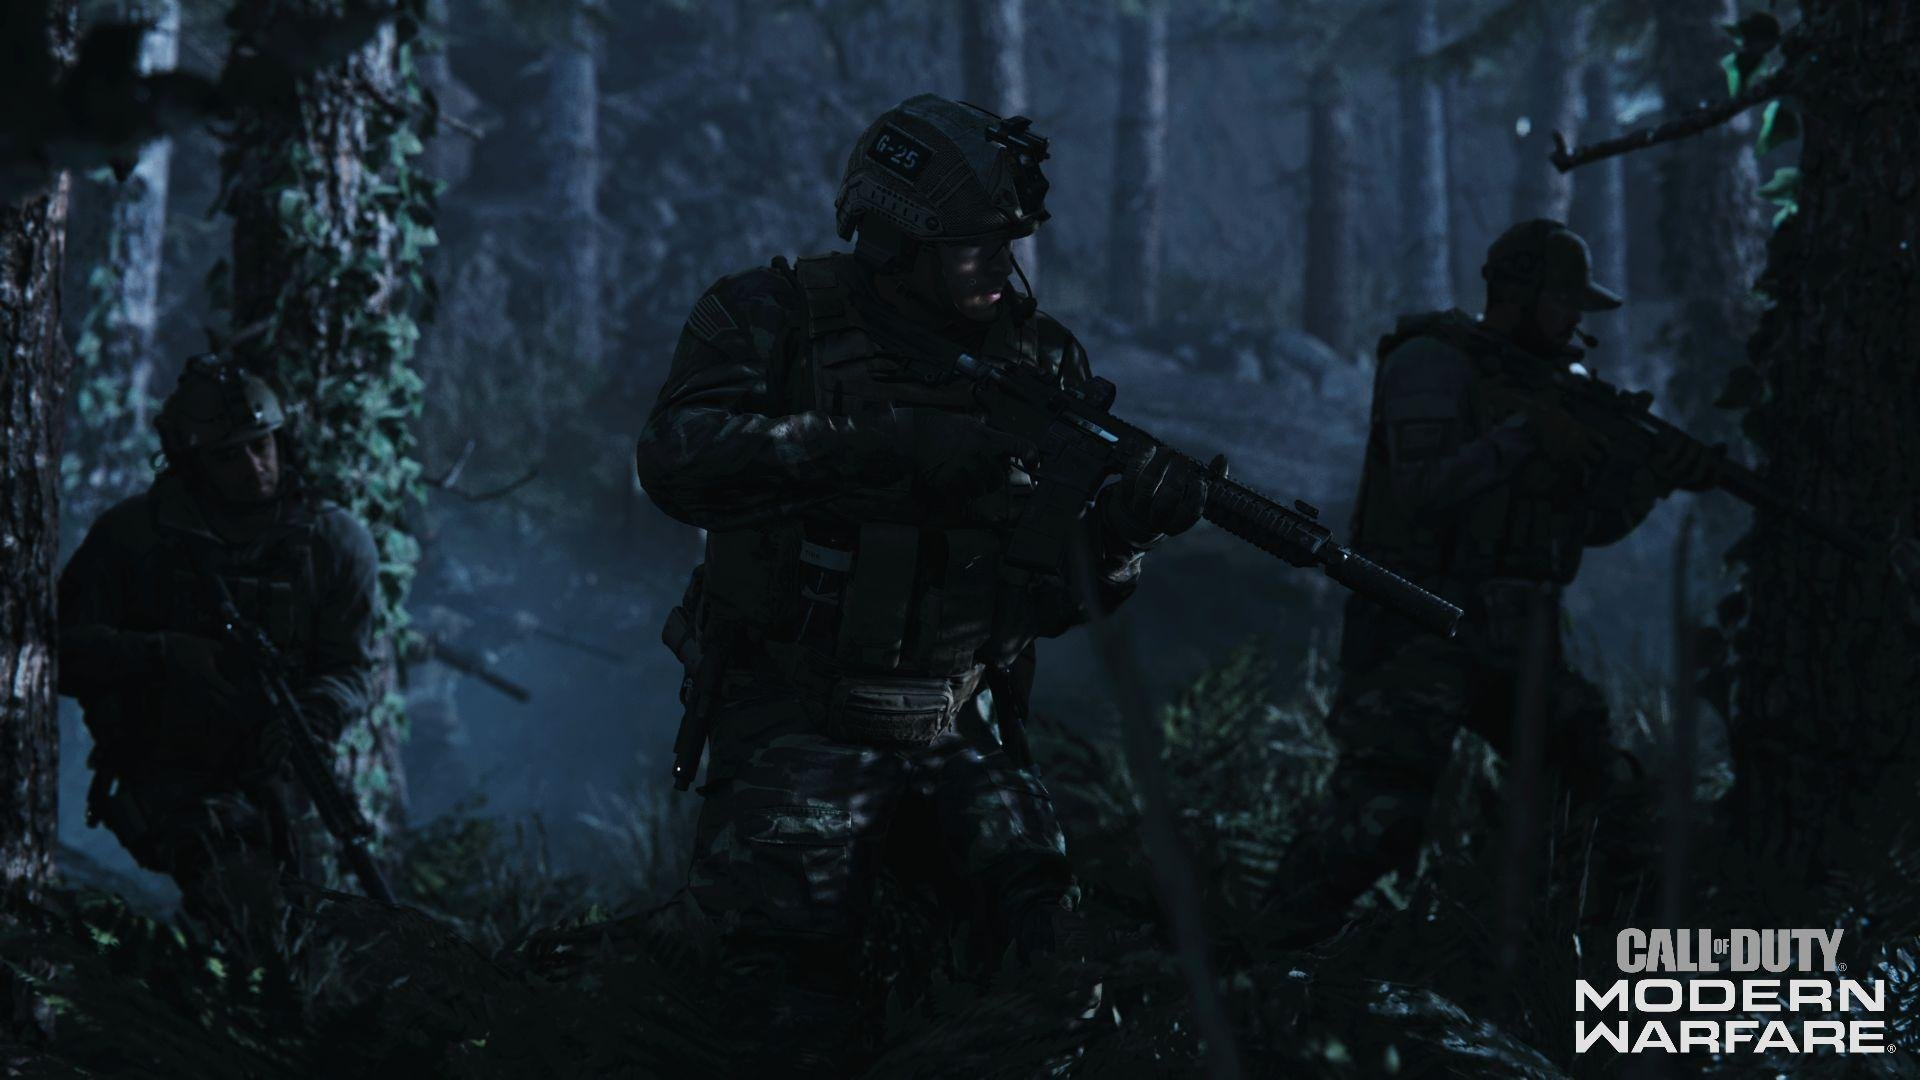 call of duty wallpaper 1920x1080 hd